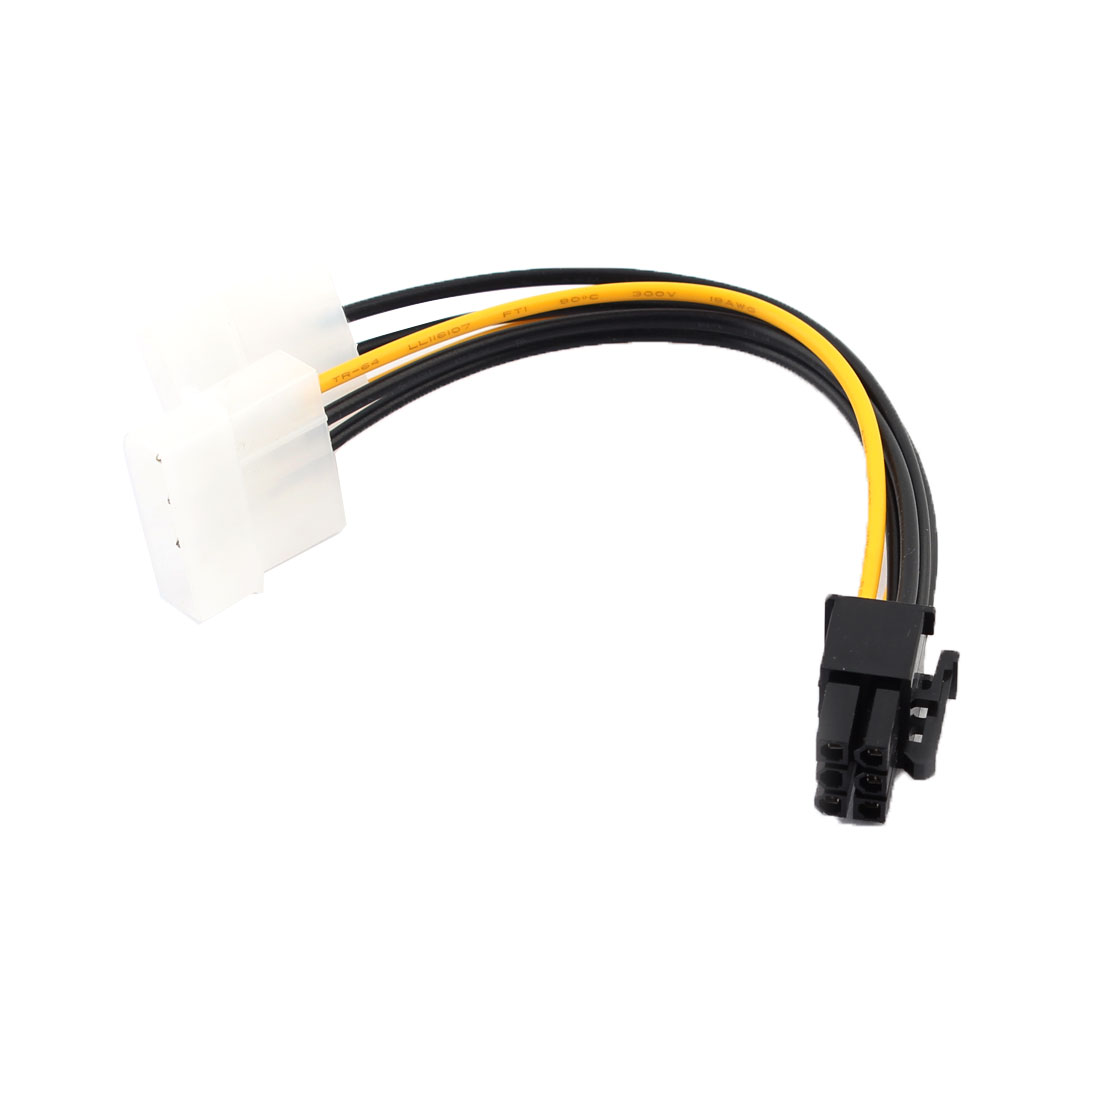 IDE 4 Pin Power to 6 Pin ATX Power Adapter Cable